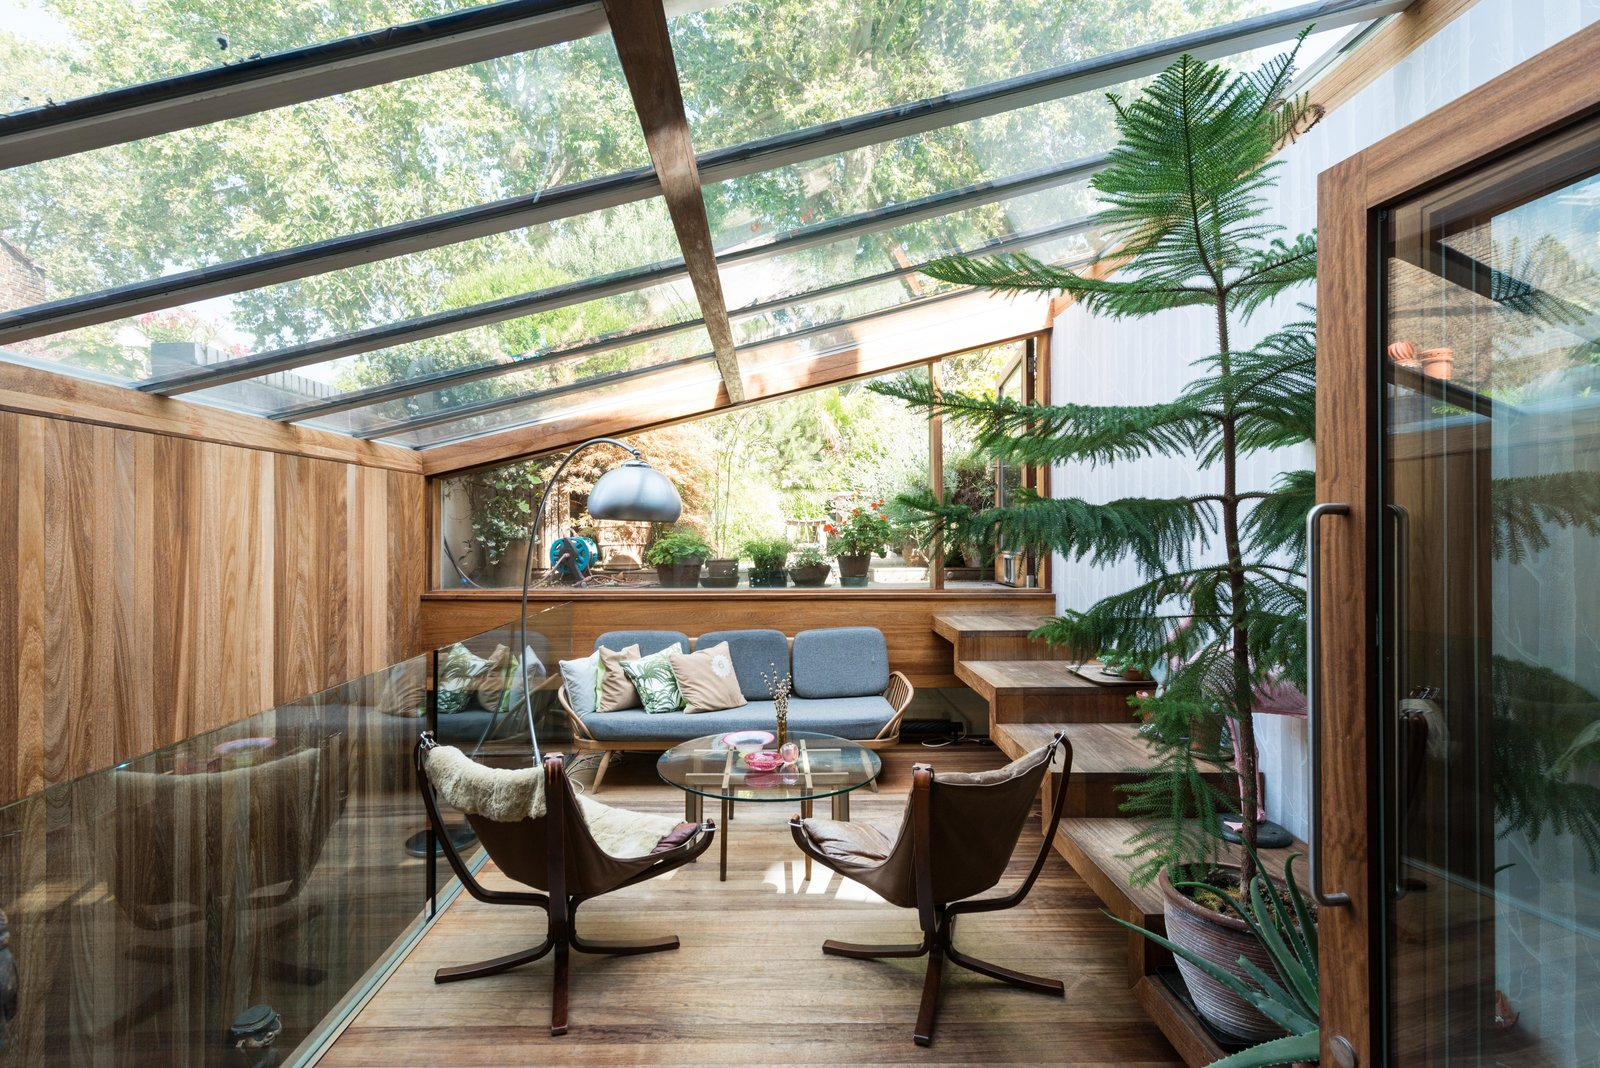 Formerly Home to an Artist and Knitwear Designer, a Commercial Space-Turned-Dwelling Hits the Market